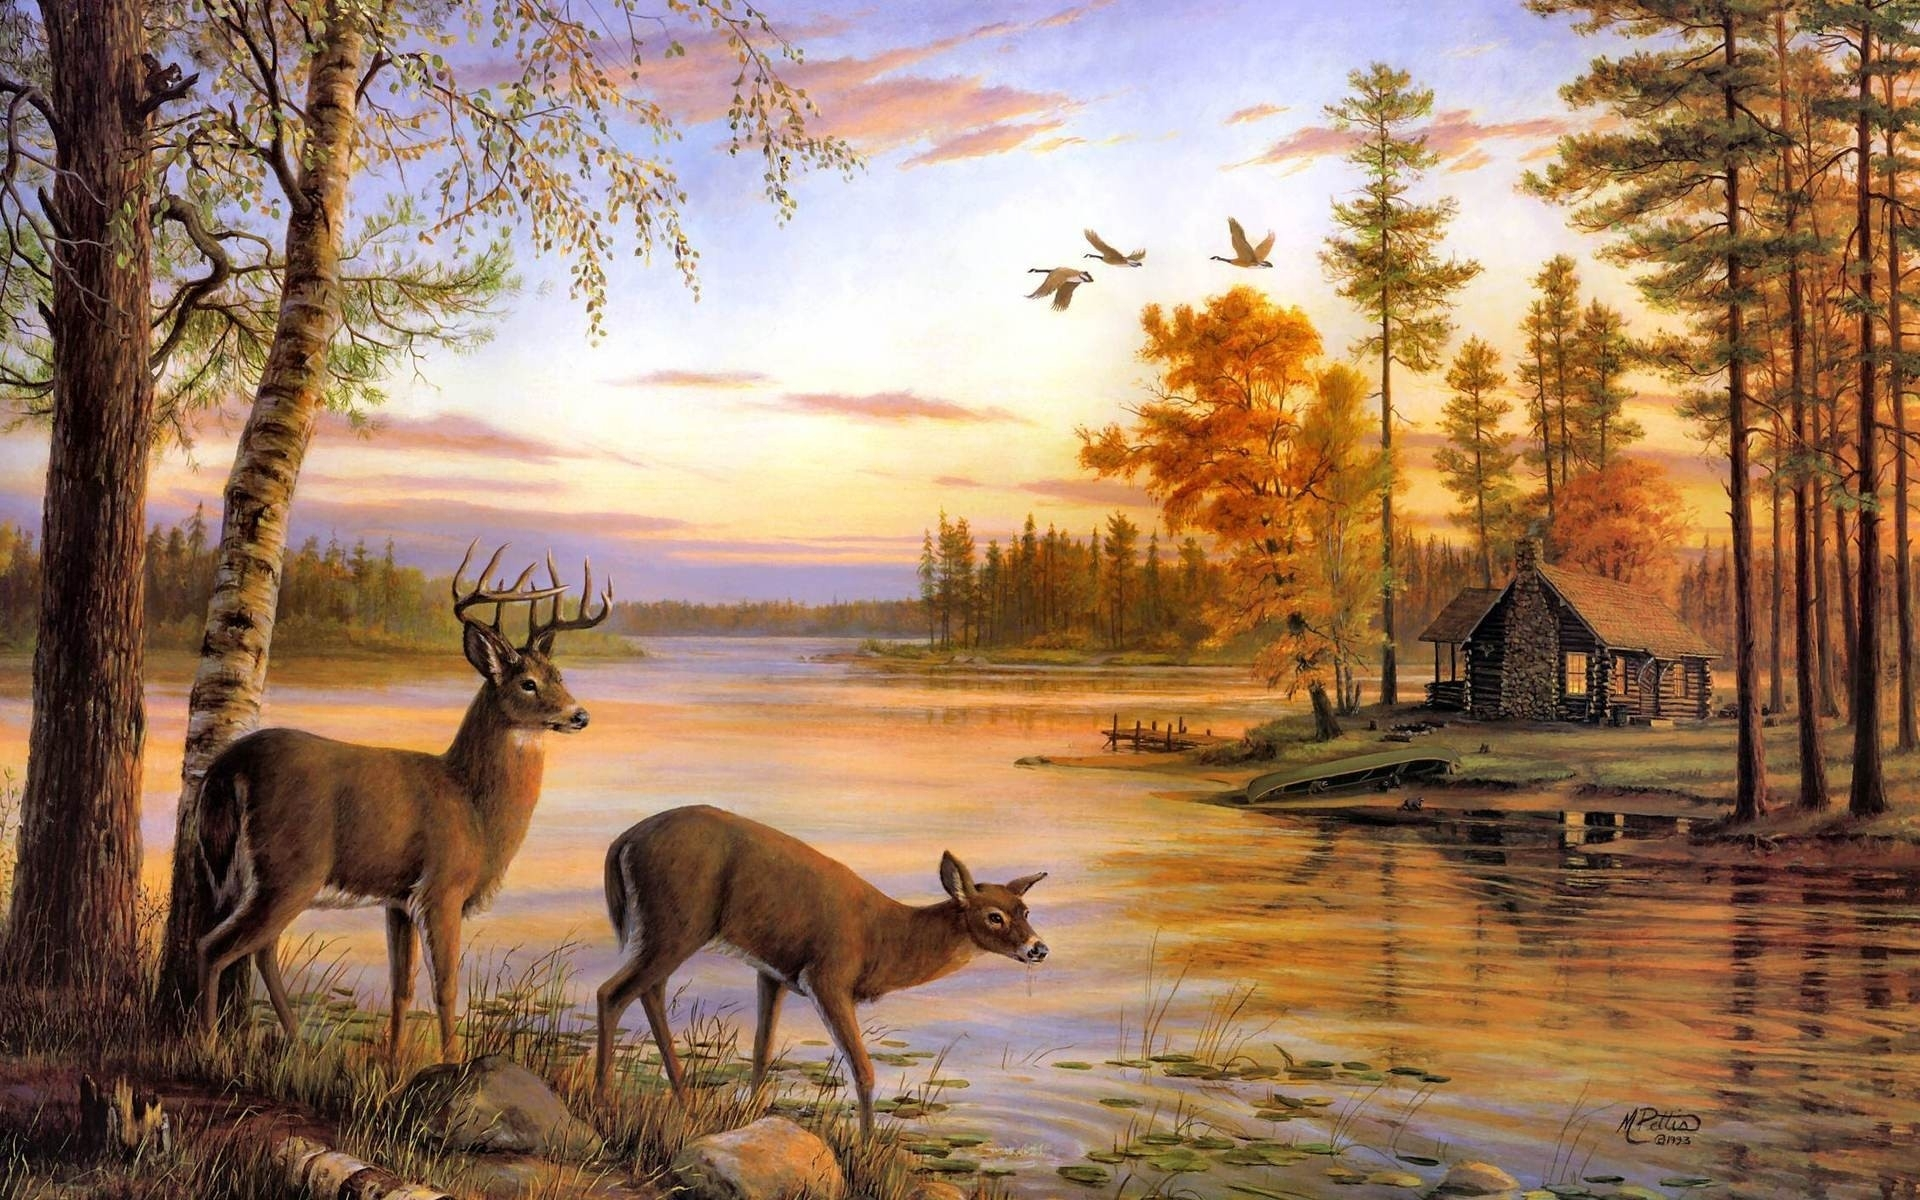 deer artwork cabin lakes 1920x1200 wallpaper High Resolution Wallpaper 1920x1200